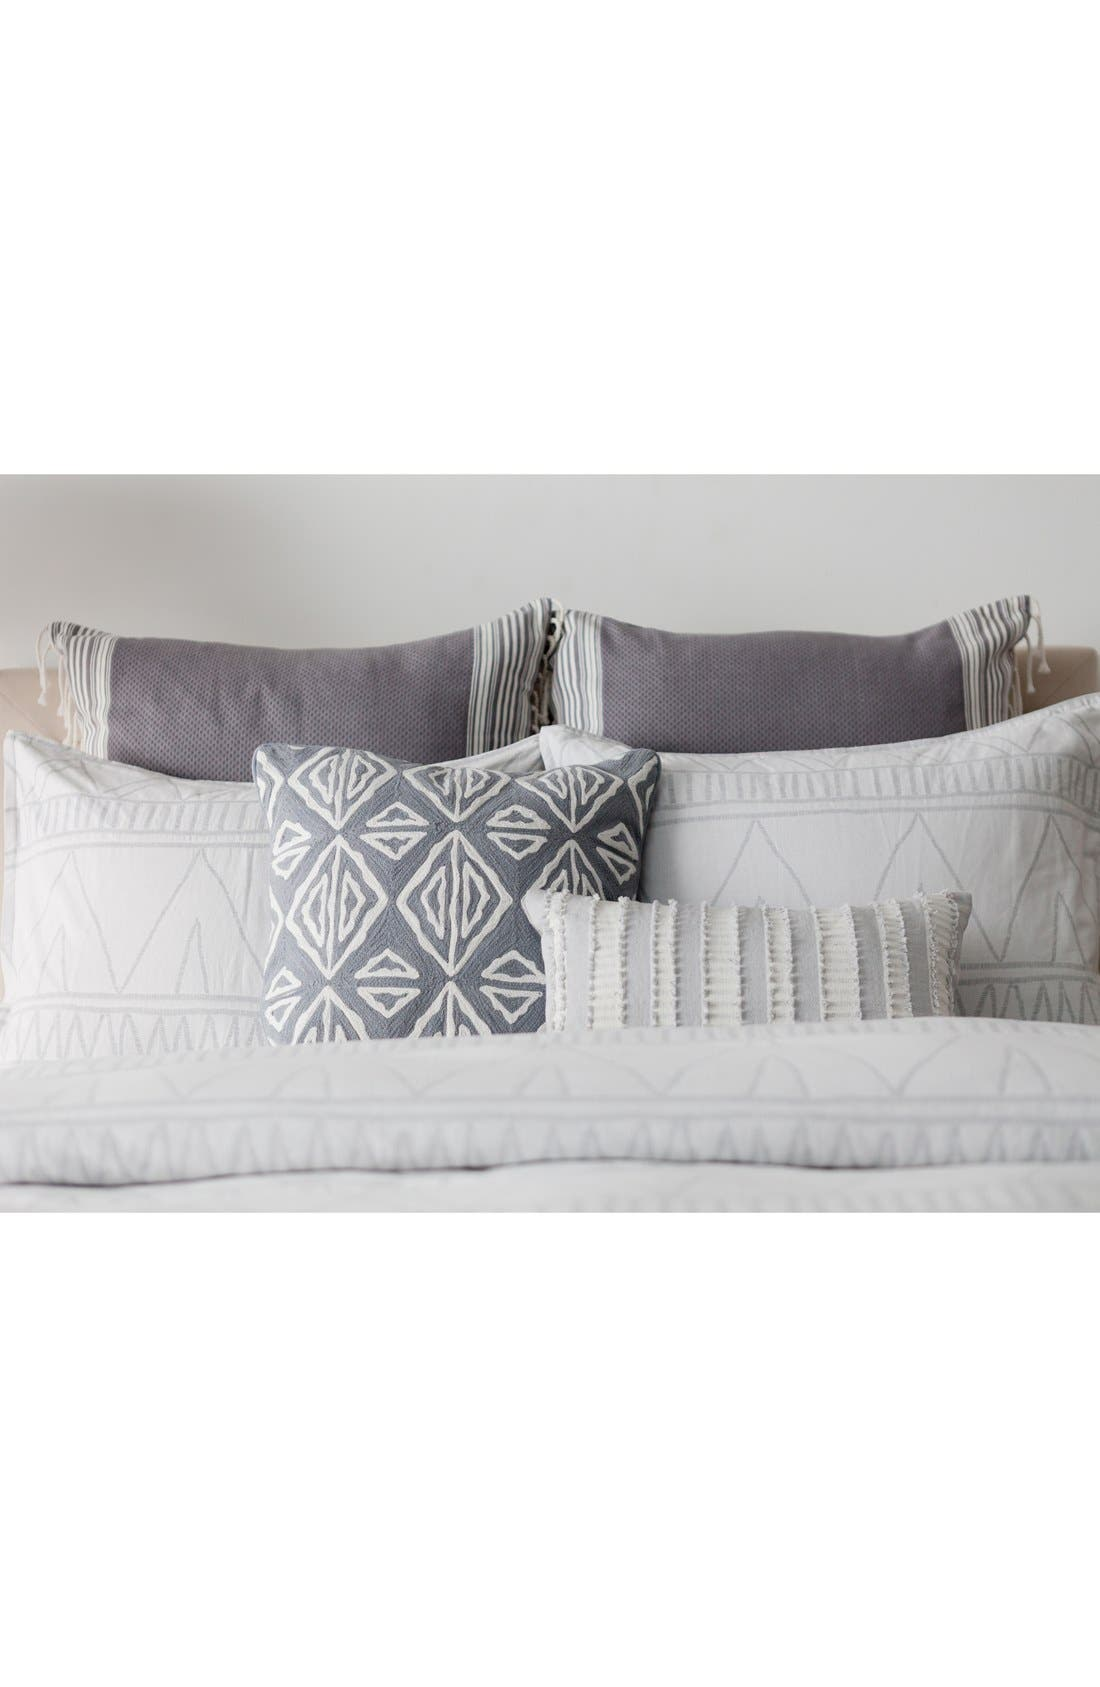 'Moroccan Geo' Crewel Embroidered Pillow,                             Alternate thumbnail 2, color,                             020